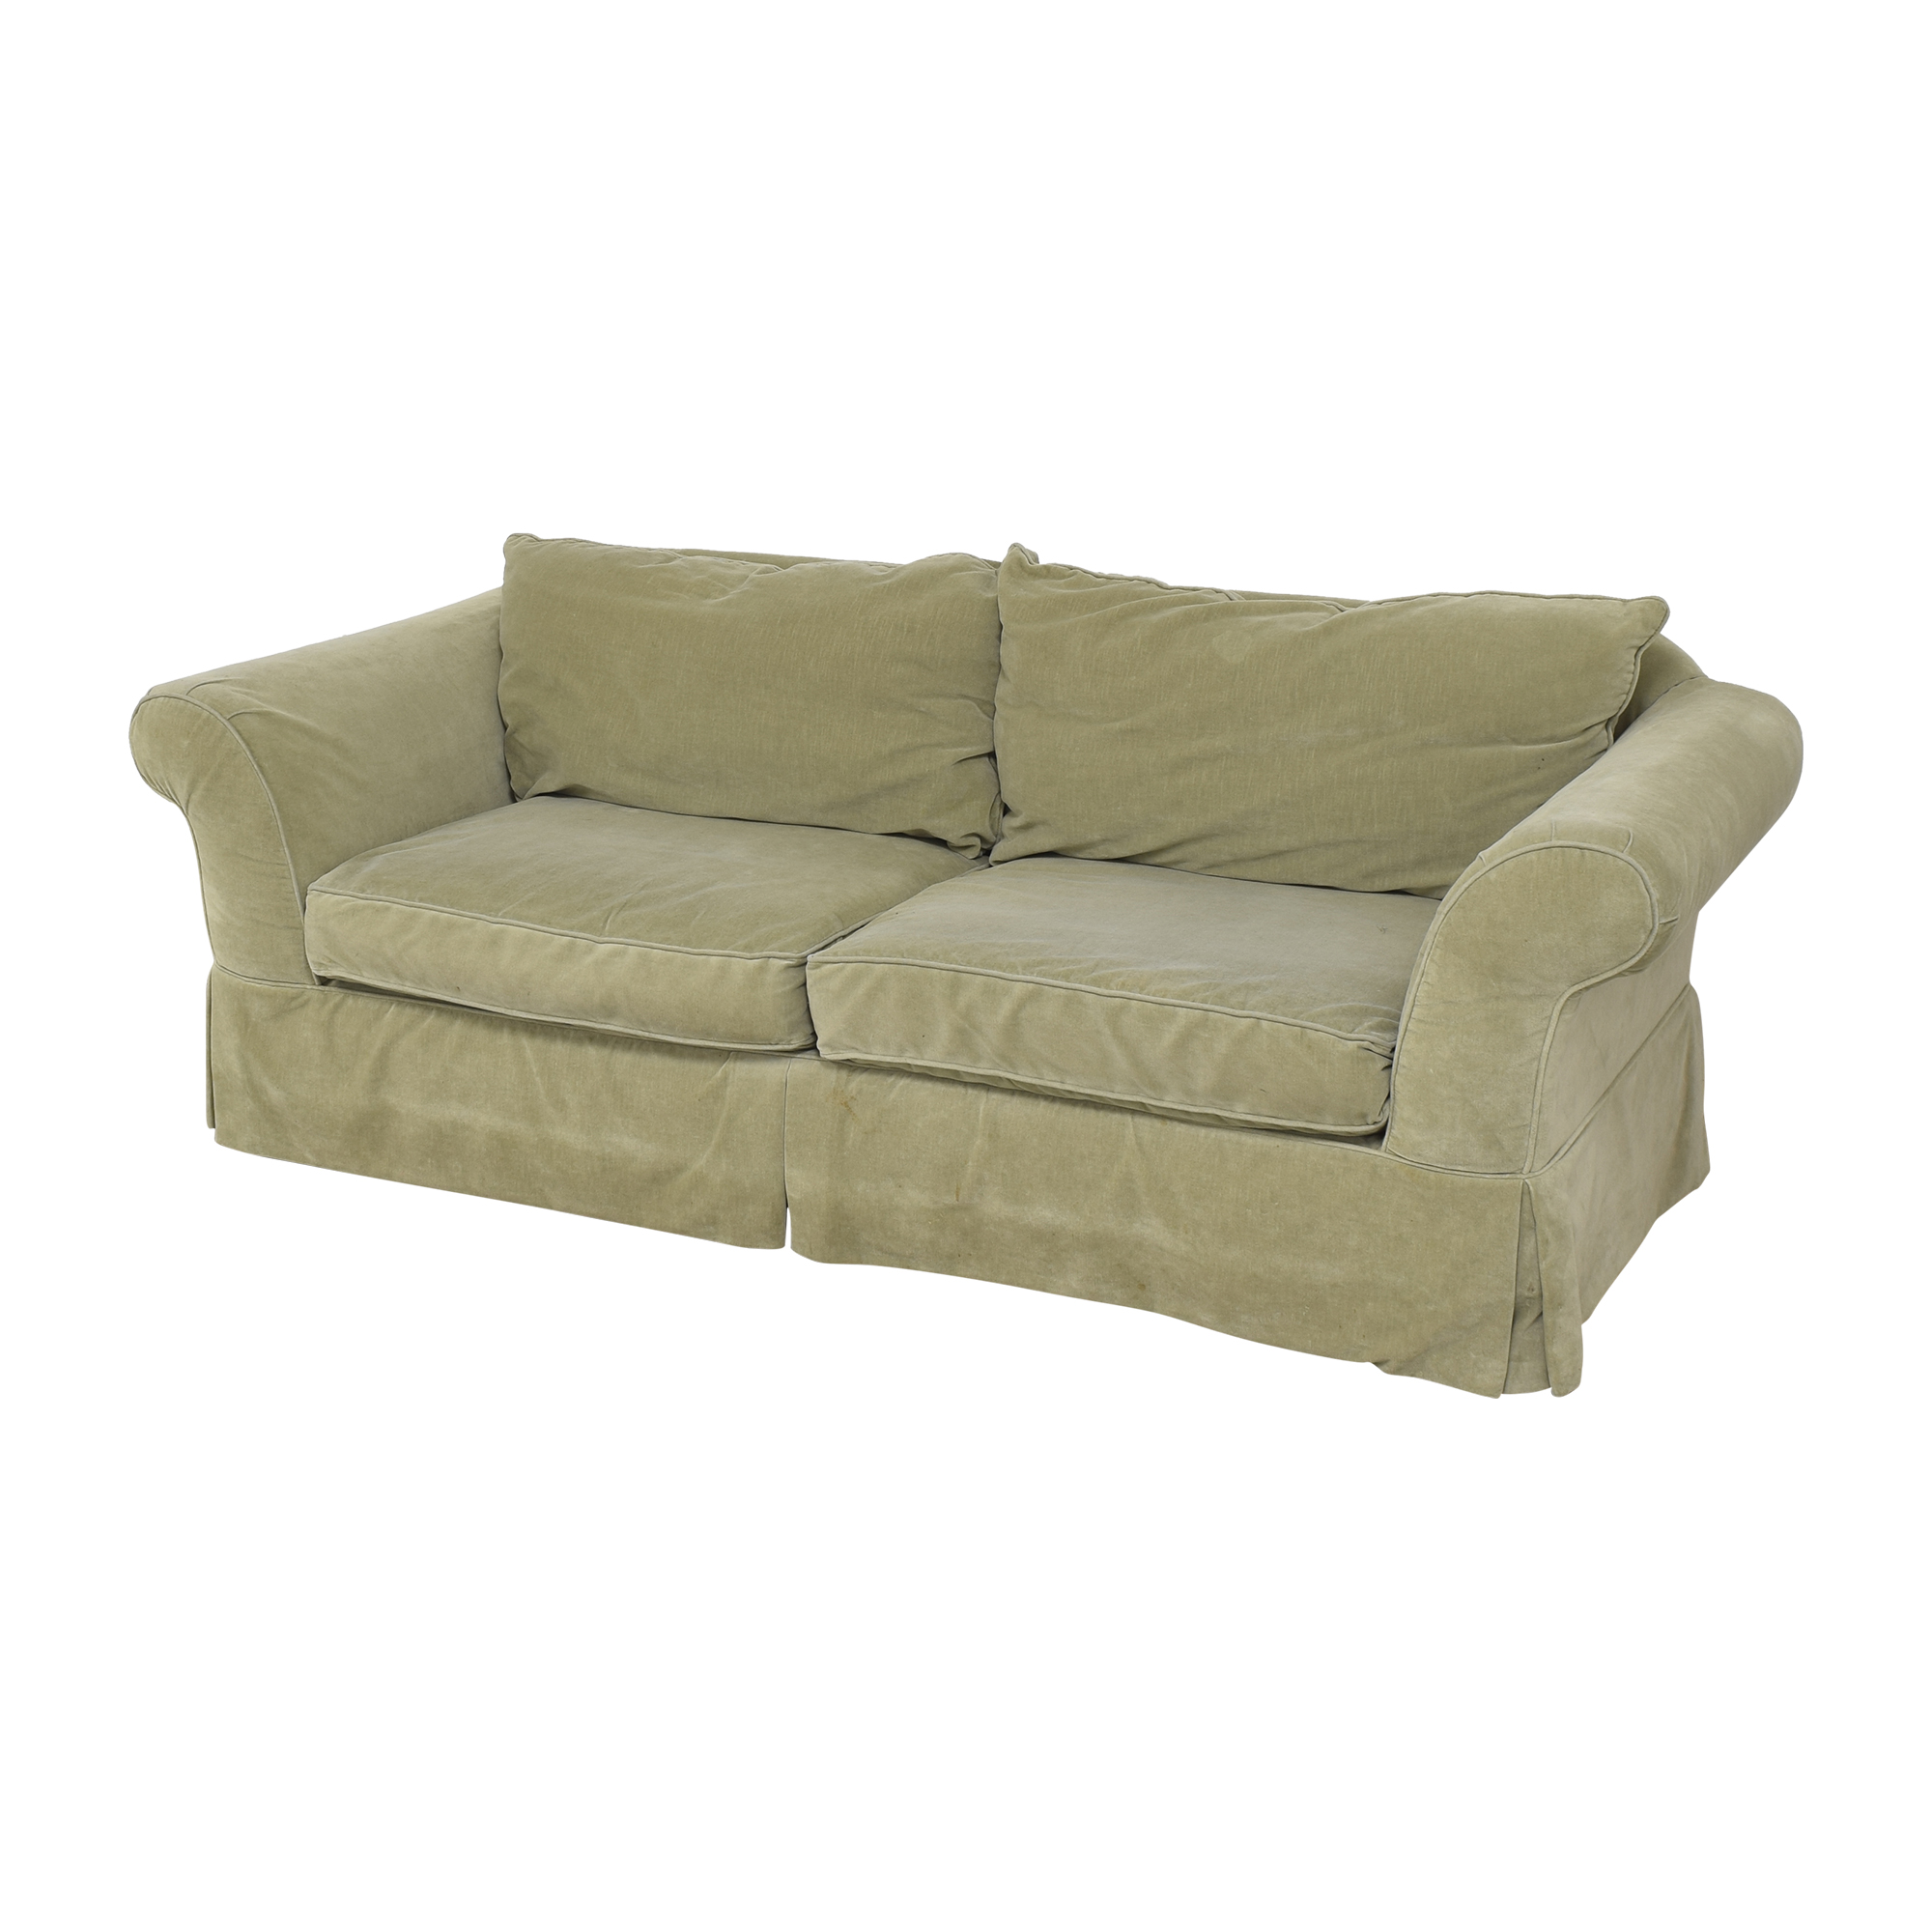 Southern Furniture of Conover Southern of Conover Roll Arm Sofa